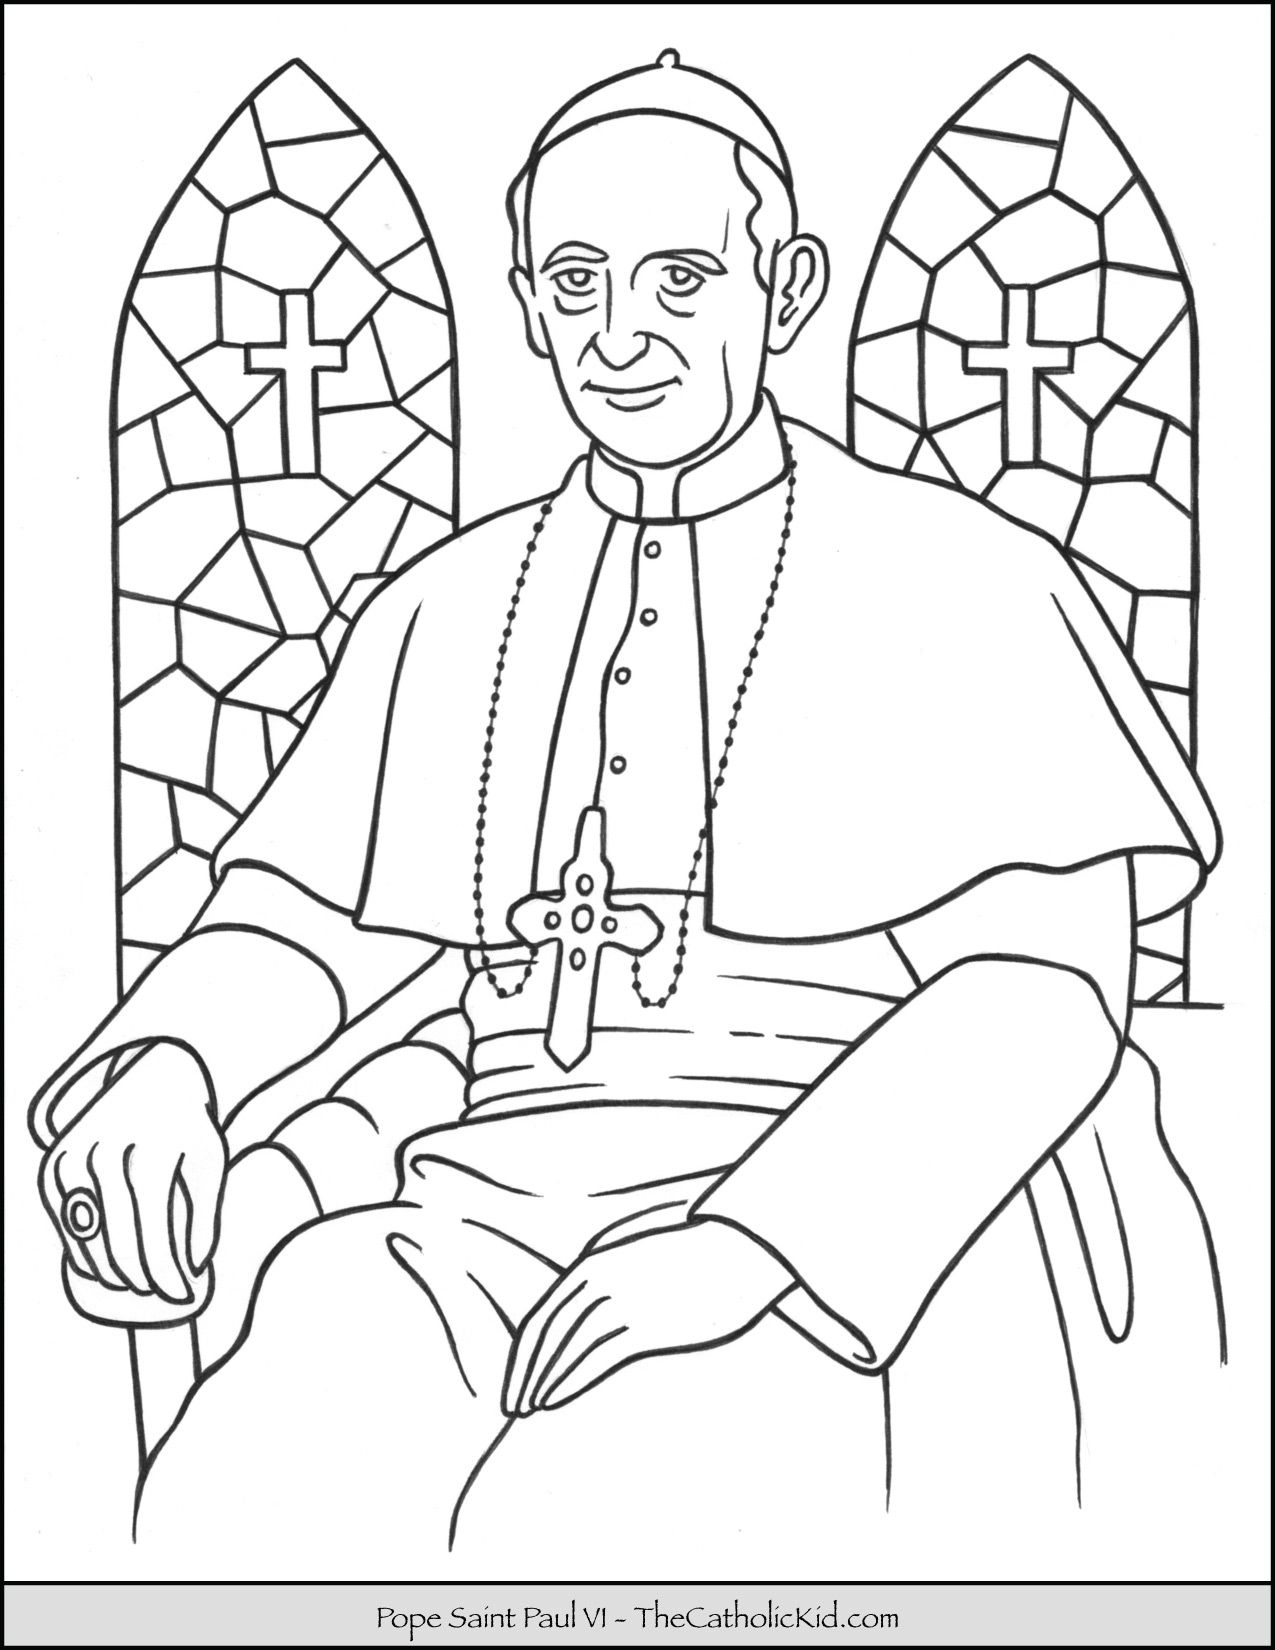 Pope Saint Paul VI Coloring Page Born September 26th 1897